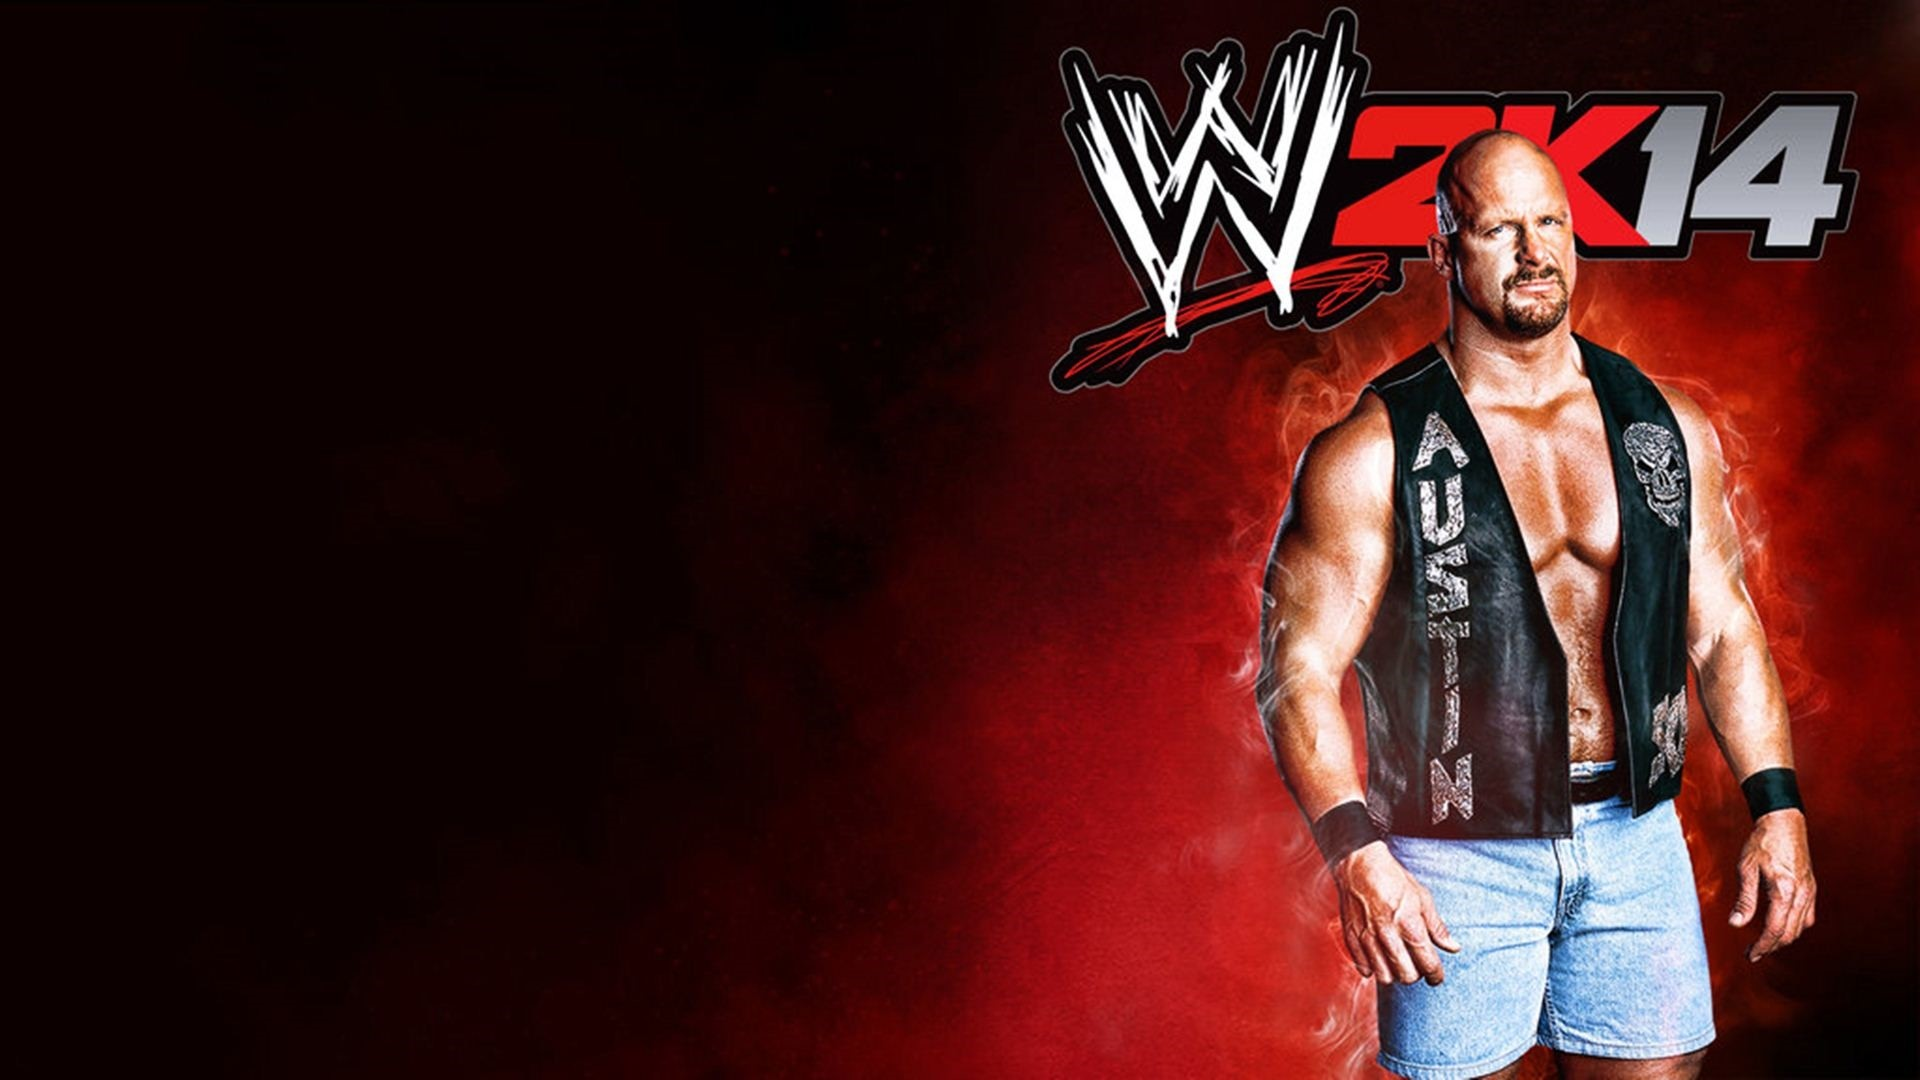 1920x1080 stone cold wwe hd background wallpaper